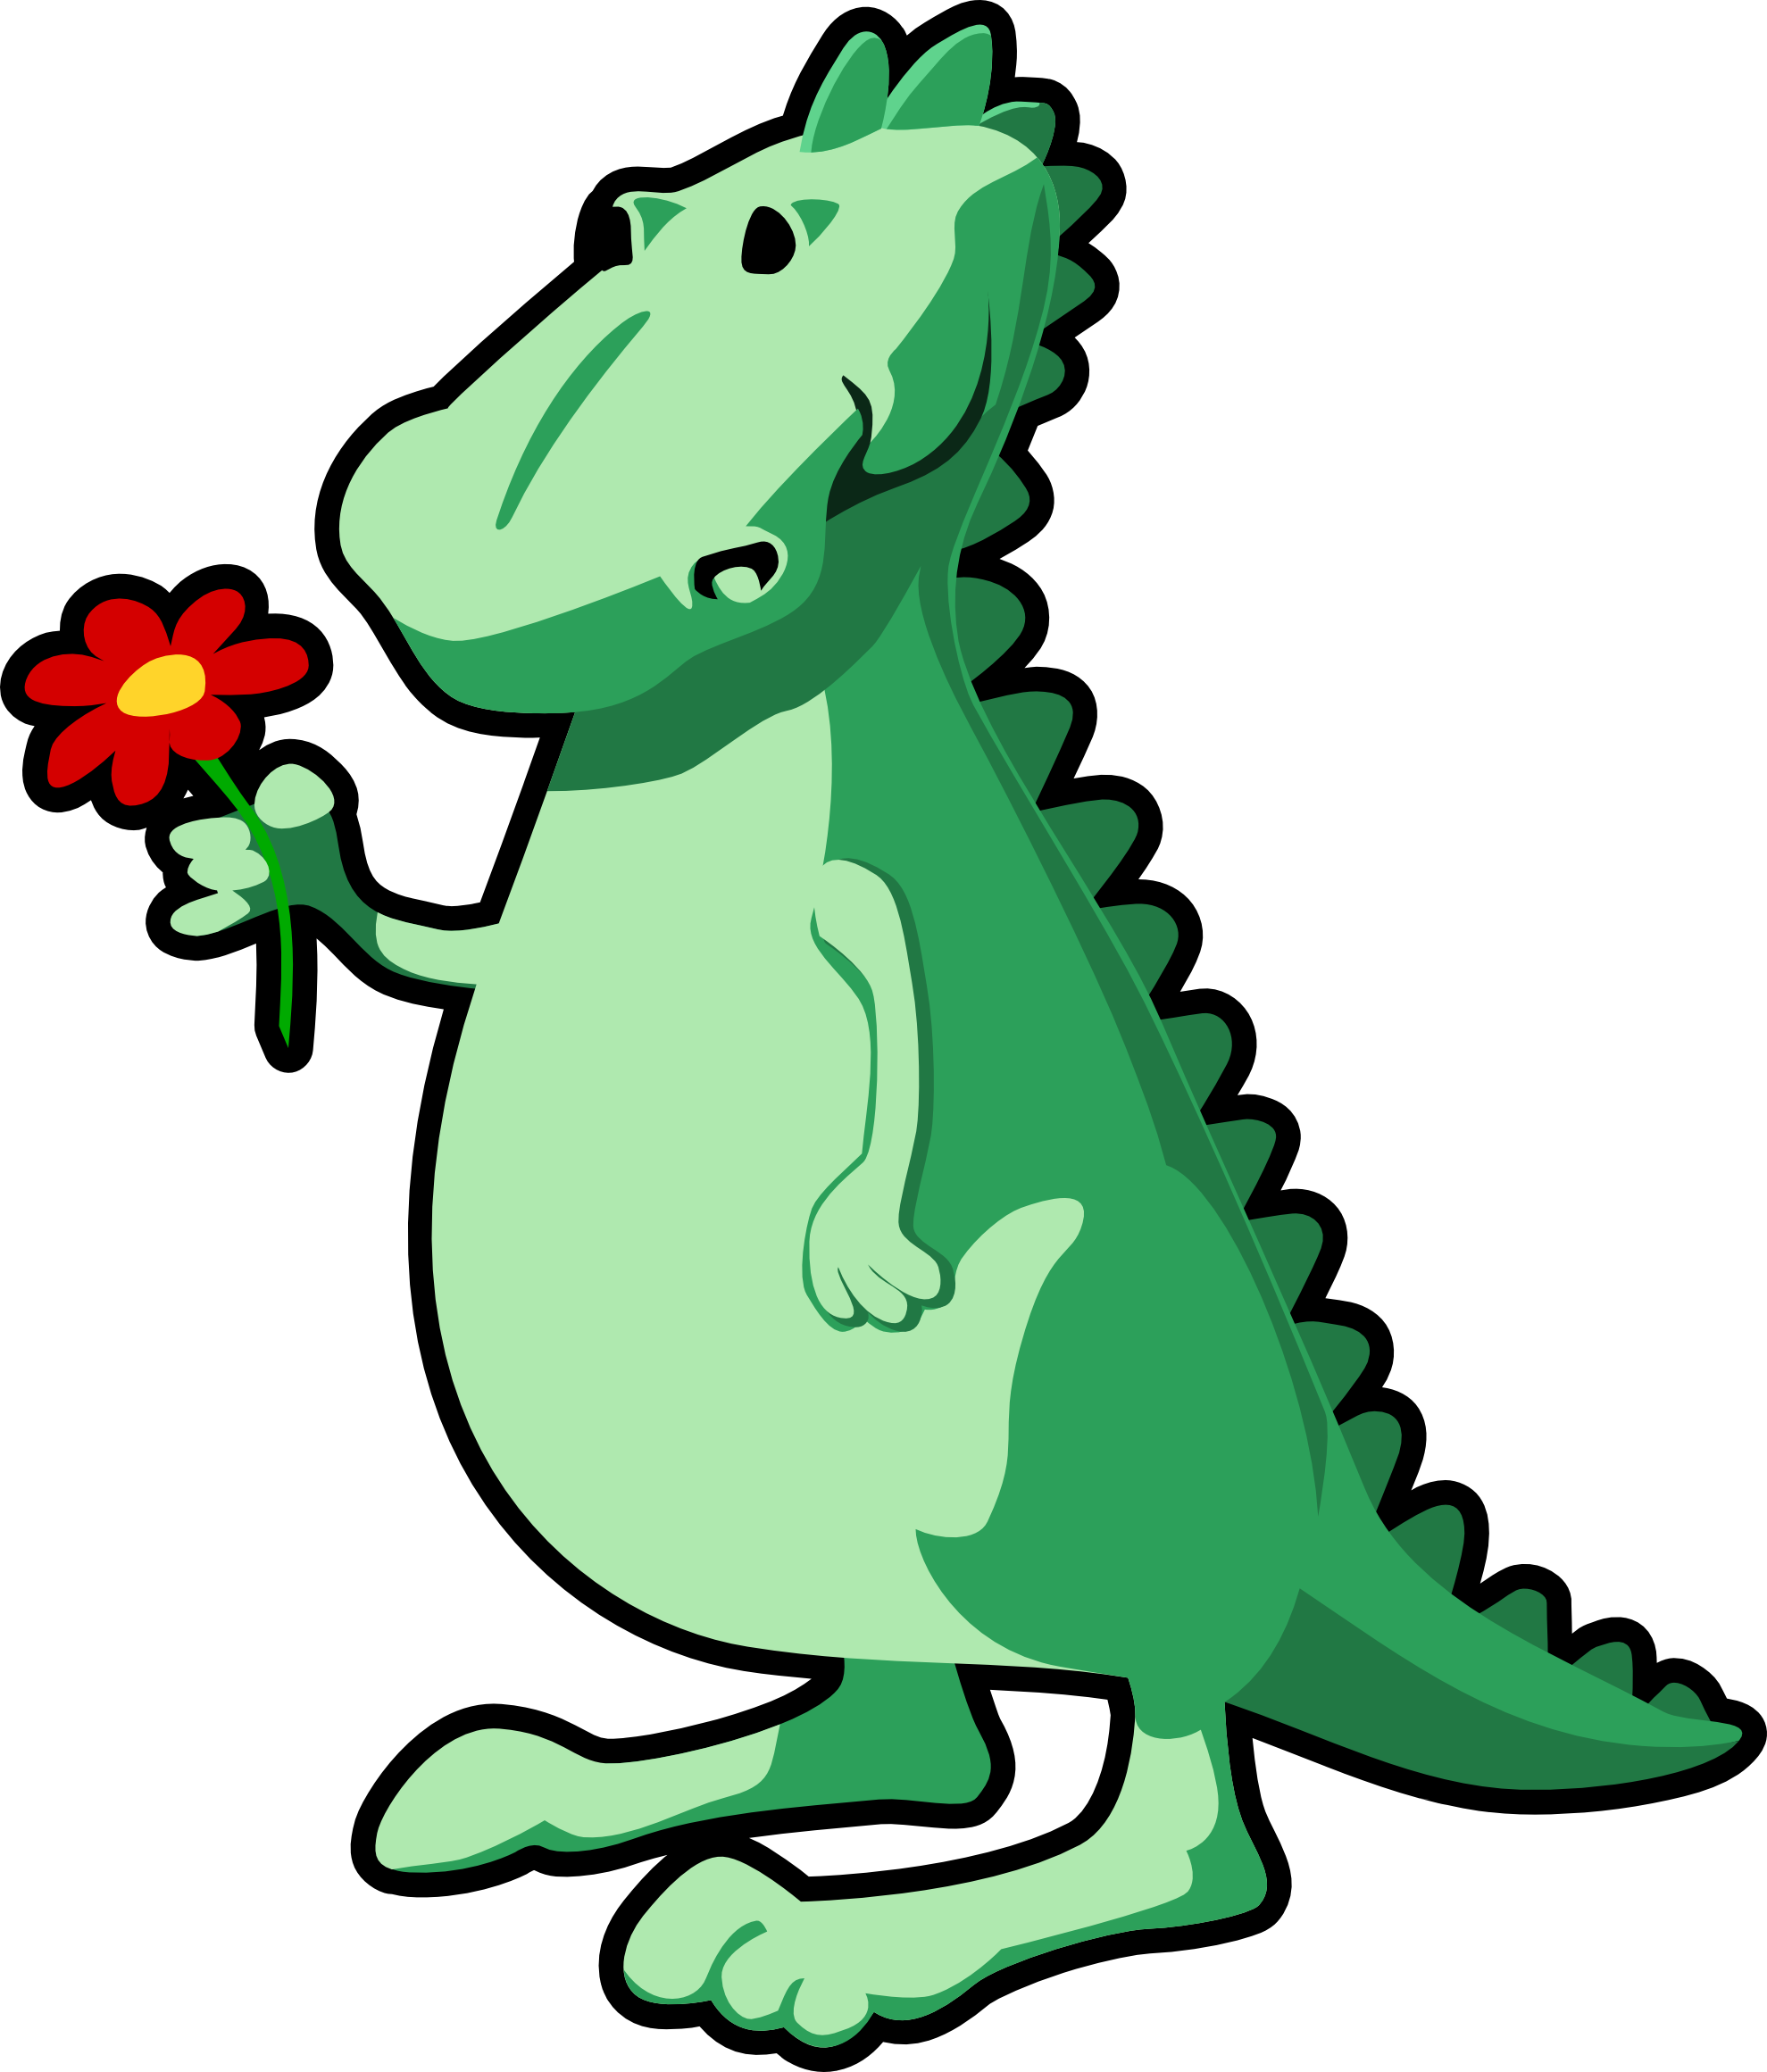 Welsh panda free images. Dinosaurs clipart group